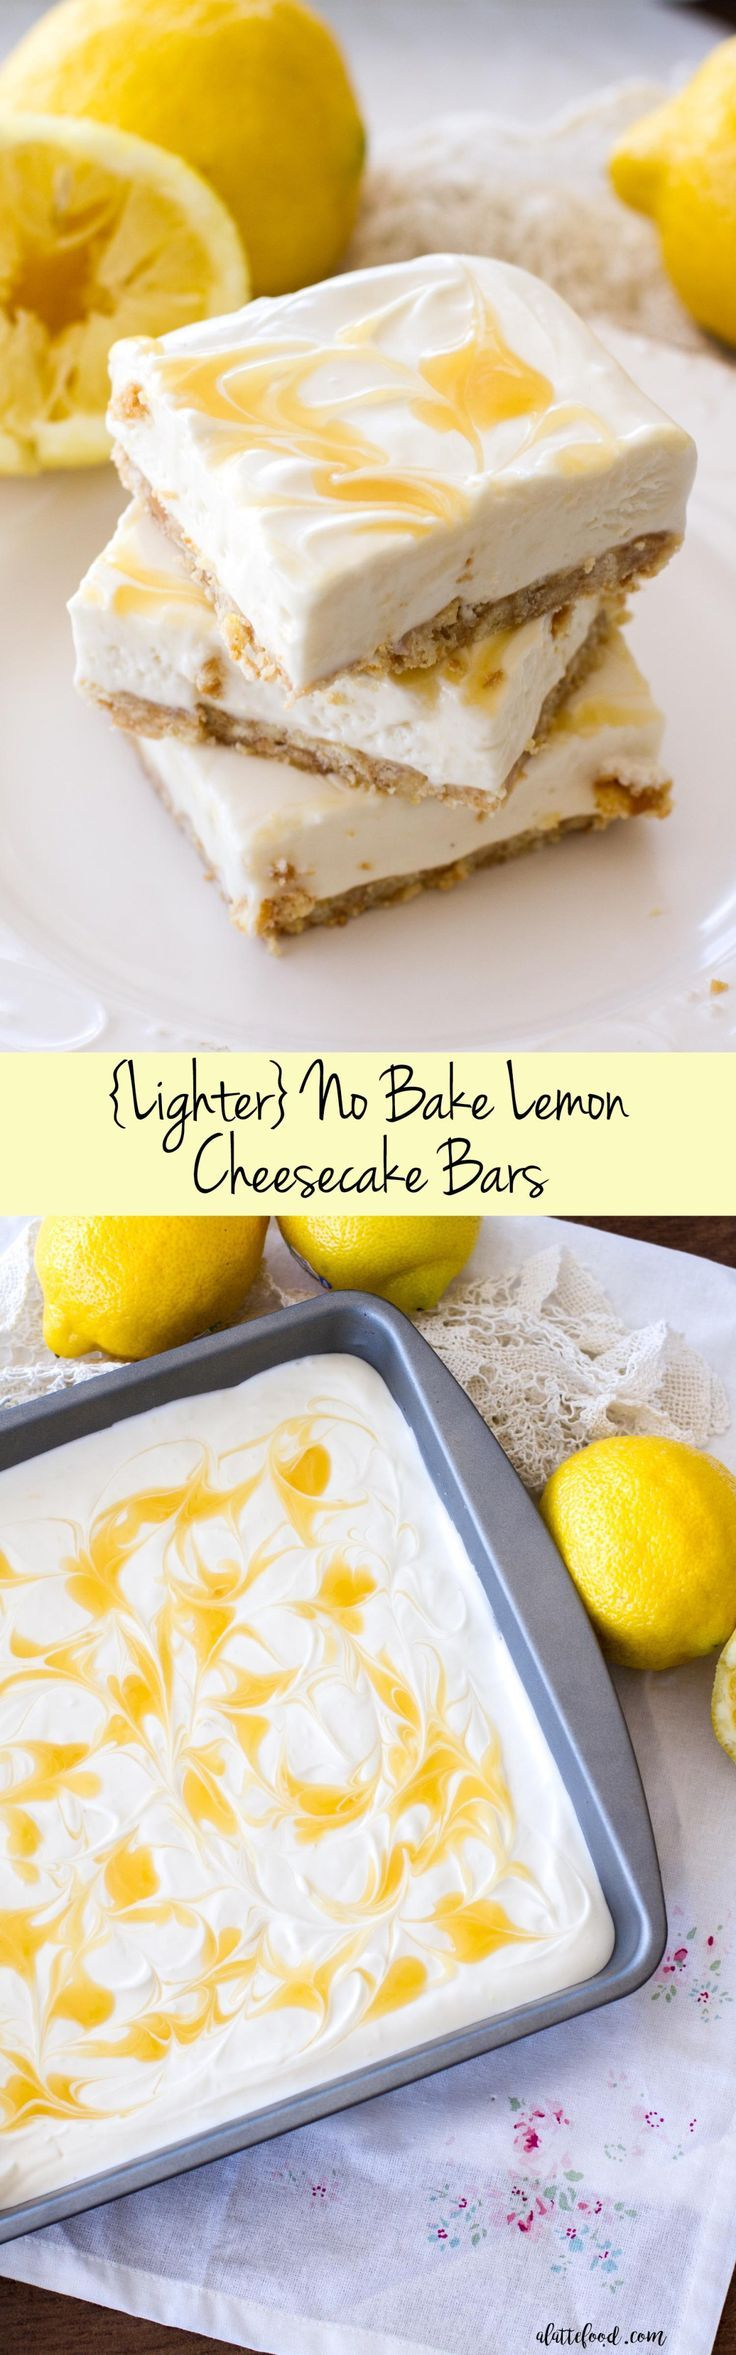 This no bake lemon cheesecake recipe is simple, full of lemon flavor, and lighter than a traditional cheesecake recipe, making it the perfect summer dessert!